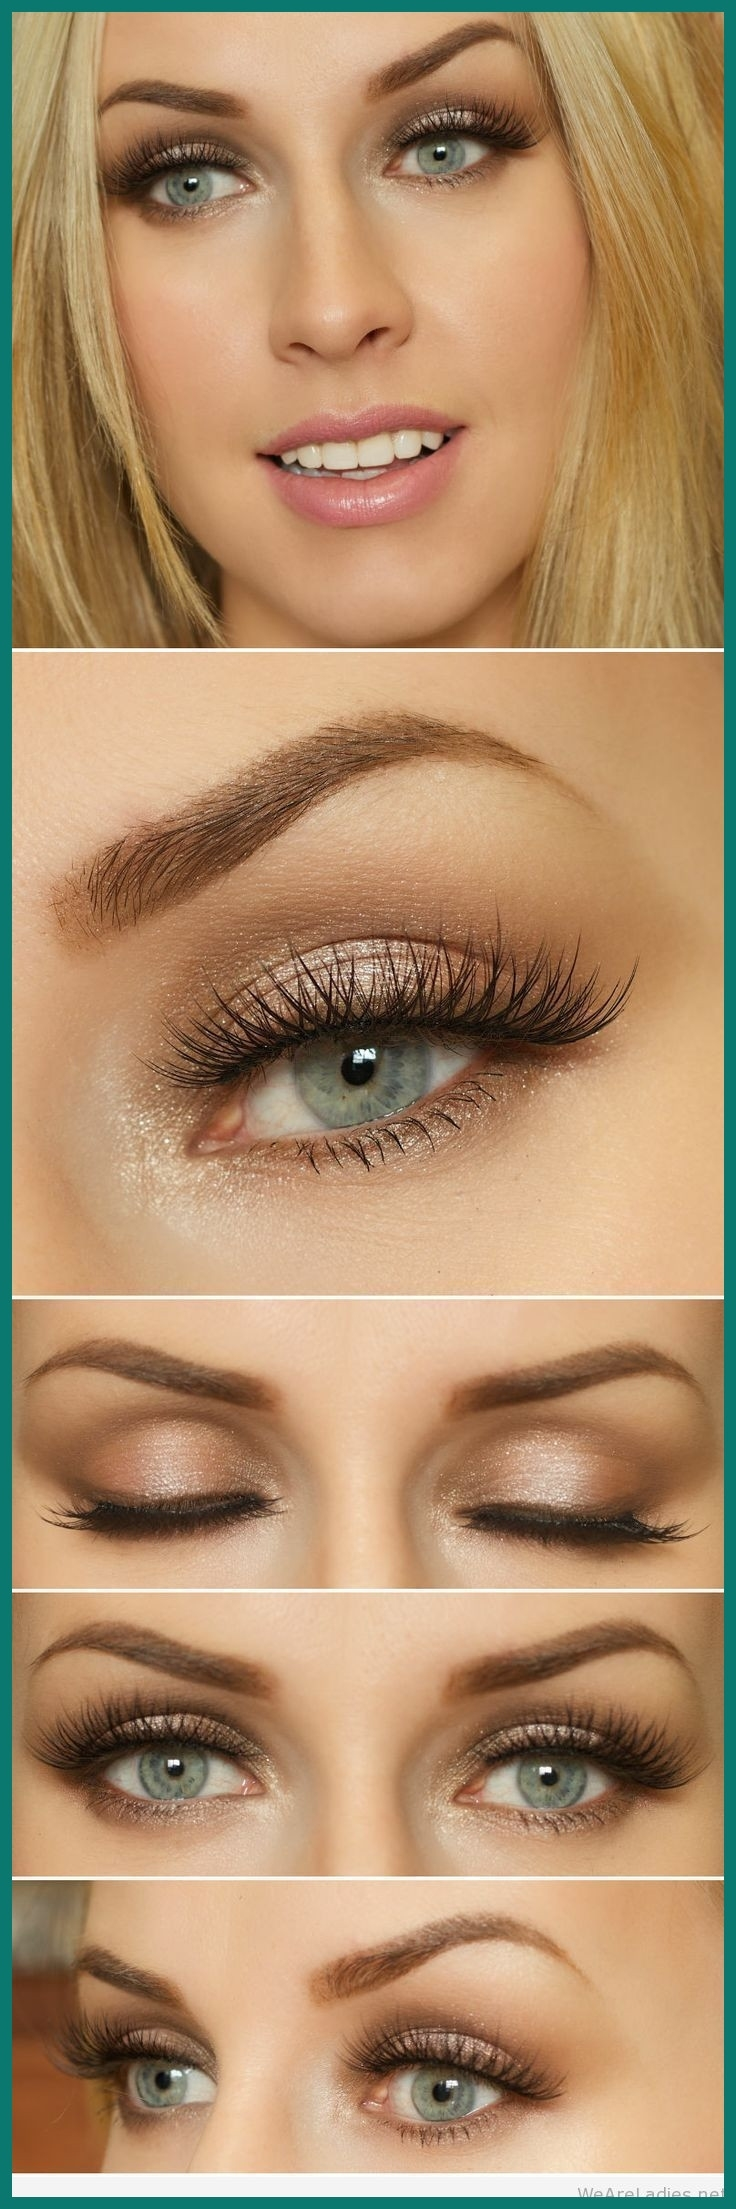 Best Eyeshadow Colors For Blue Eyes And Brown Hair 534226 with Eyeshadow Colors Blue Eyes Blonde Hair